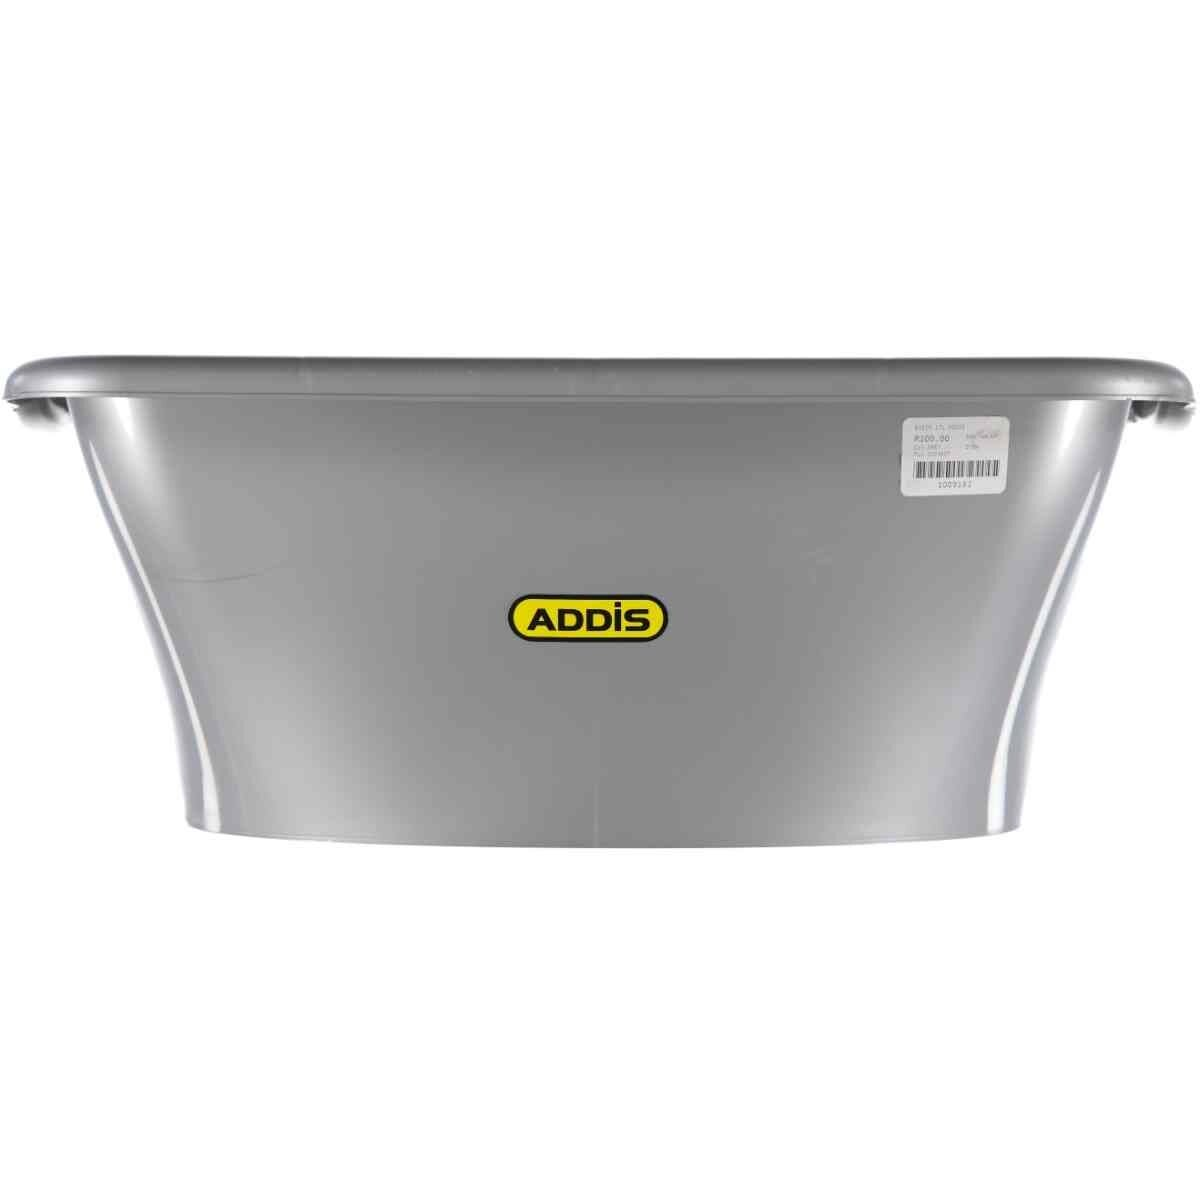 Addis 17L Plastic Basin